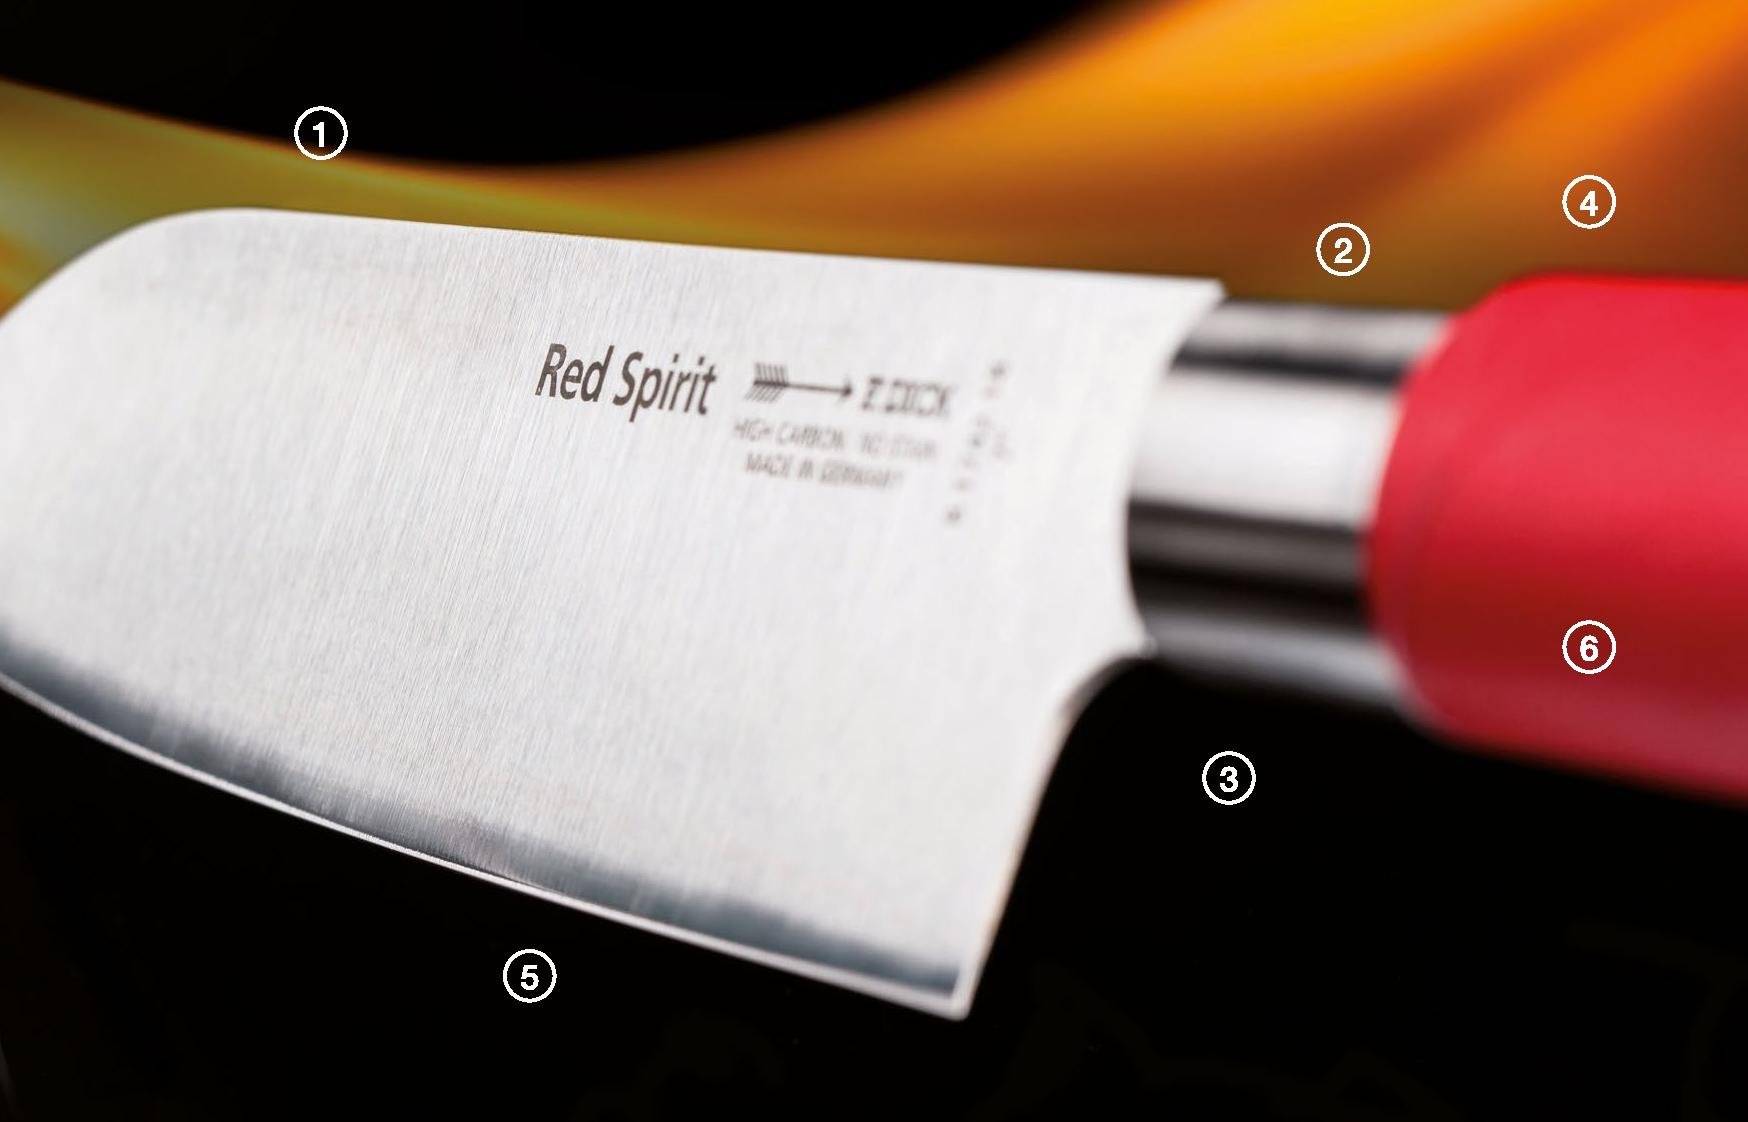 F. Dick Red Spirit 7'' Blade Usuba Vegetable Knife - Asian Inspired Chef Knife - Made In Germany by RED SPIRIT